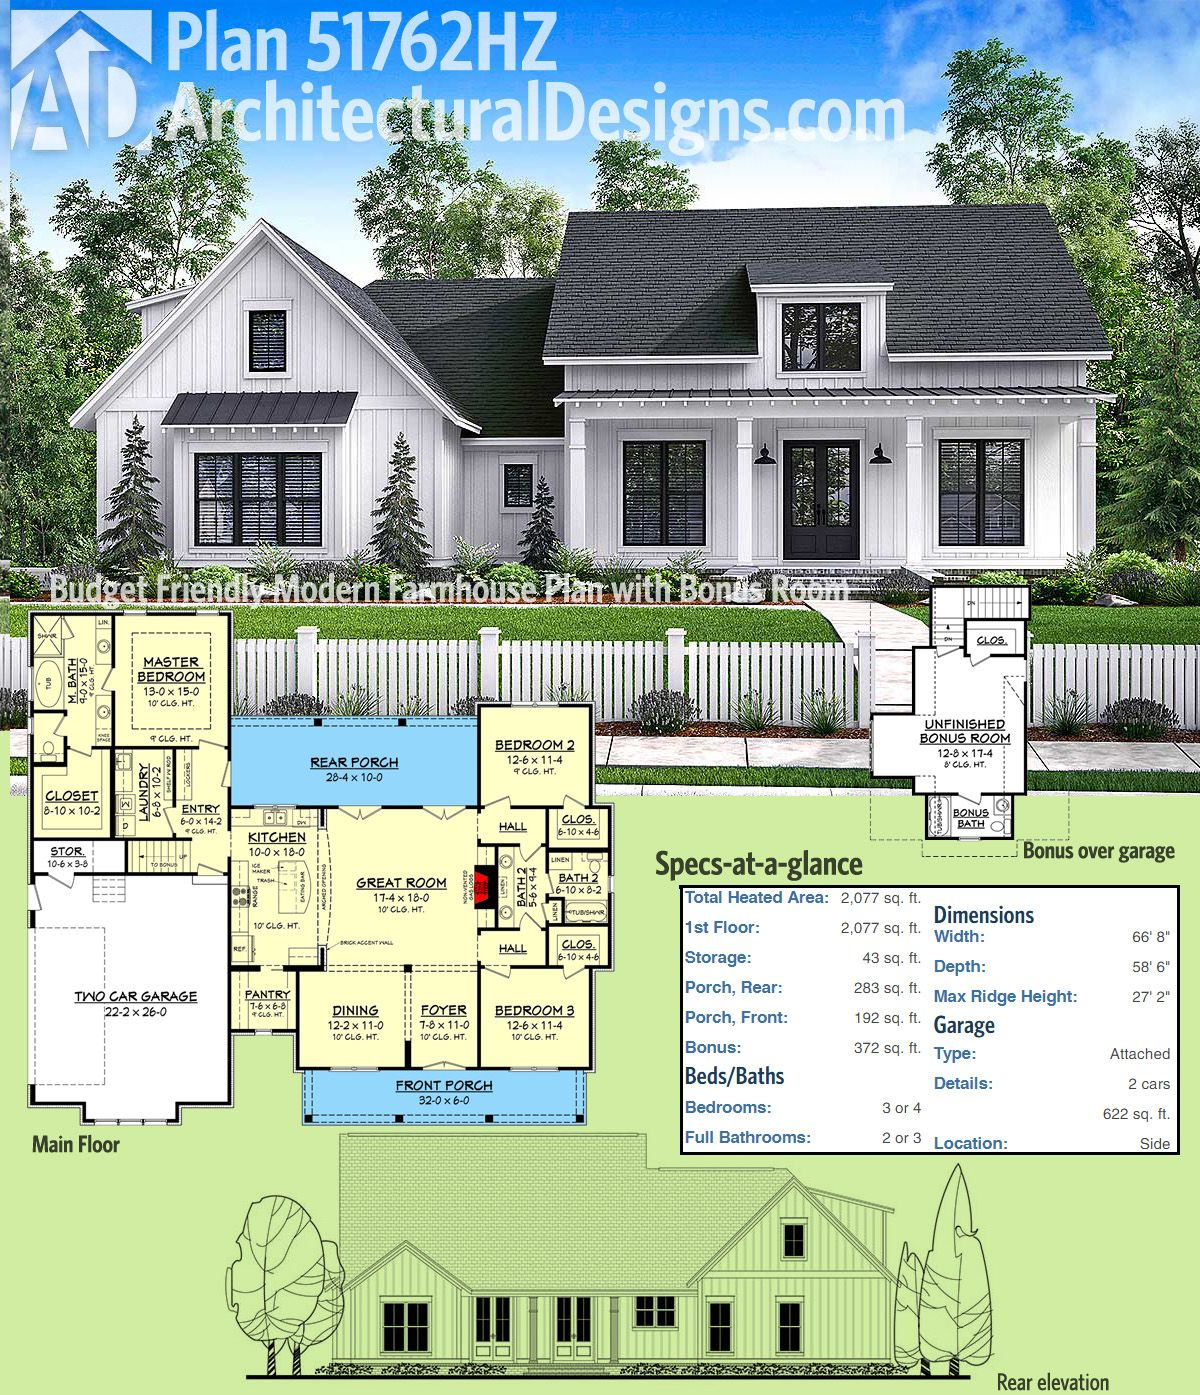 Plan 51762hz budget friendly modern farmhouse plan with for Modern farmhouse architecture plans